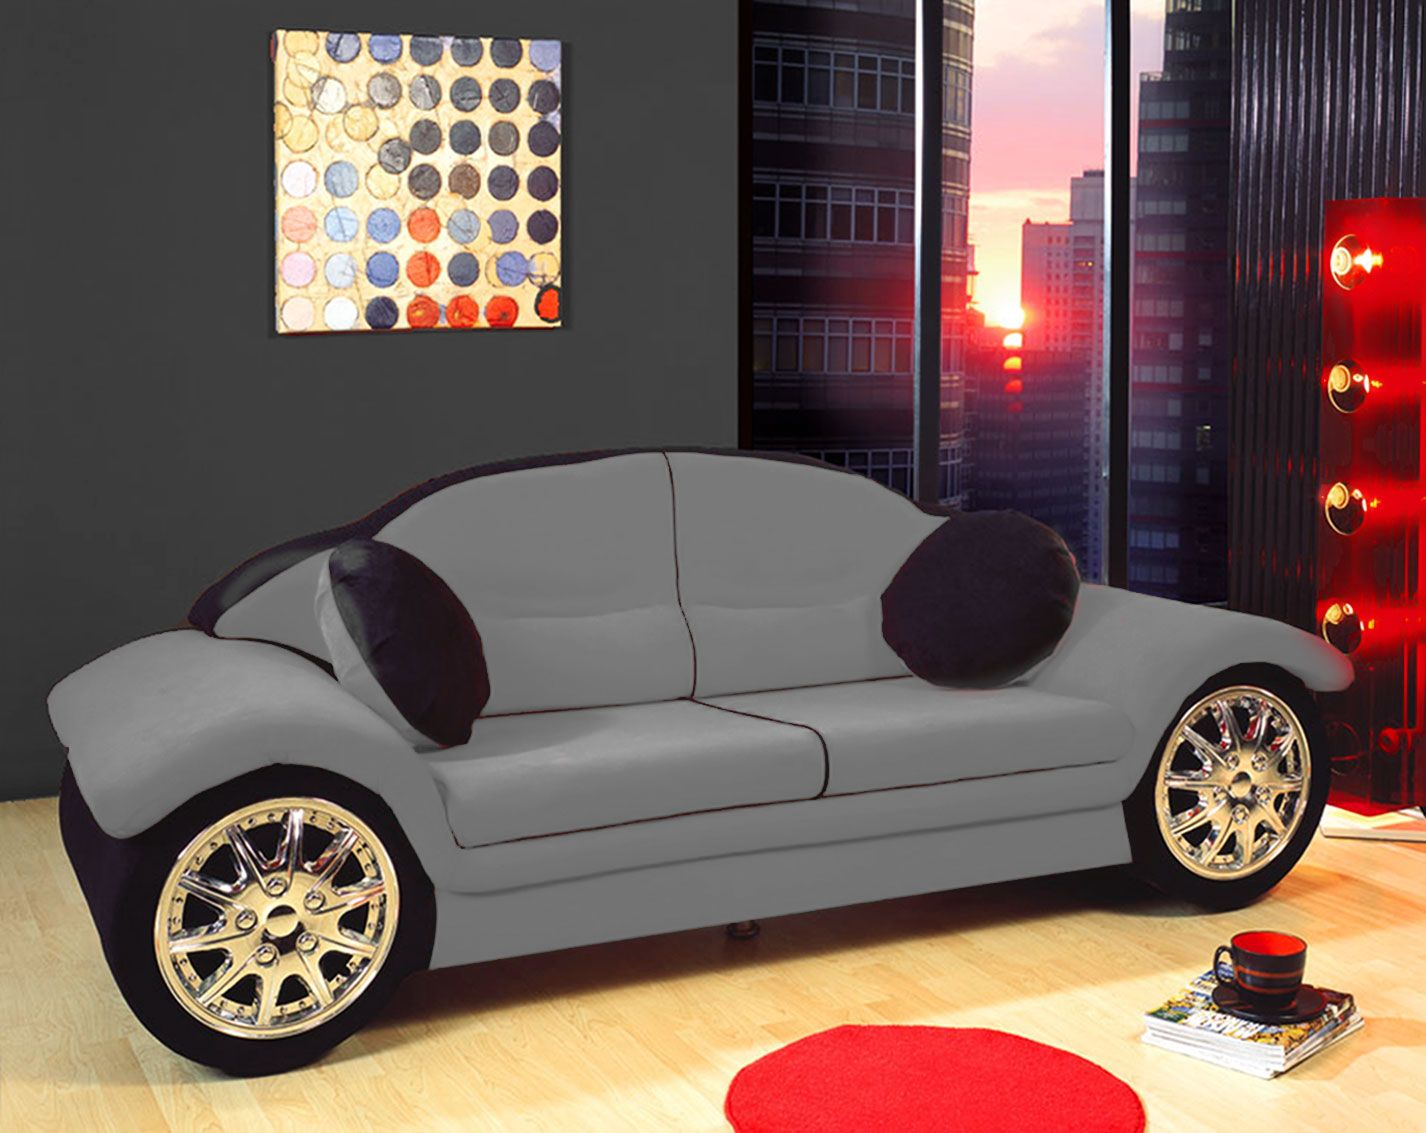 Car Sofa Bedrooms Pinterest # Muebles Raros Para Ninos